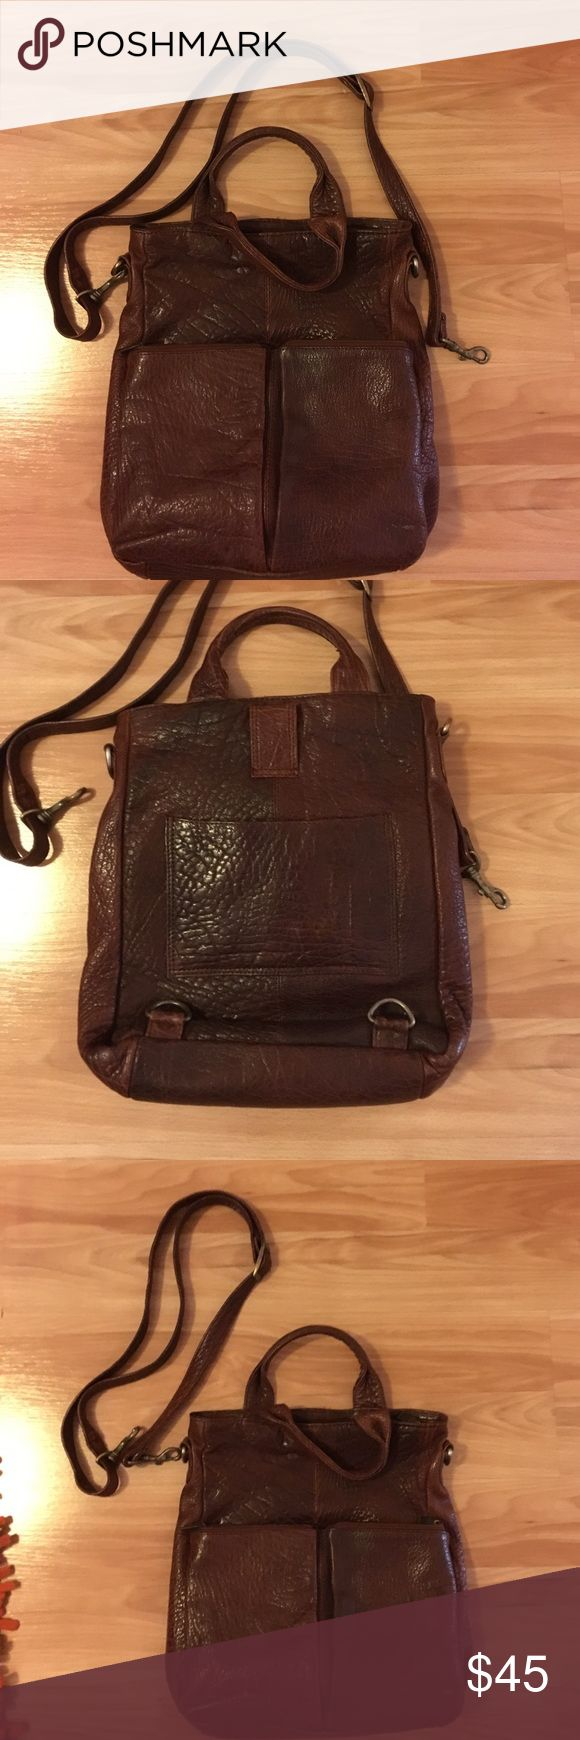 Pee-owned genuine leather Wilson convertible bag. Very unique purse that can be use 3 ways ( backpack, crossbody bag, and a small tote bag)! This is made of genuine leather and made in India. The bag has a vintage look to it. Textured dark brown leather. Bags